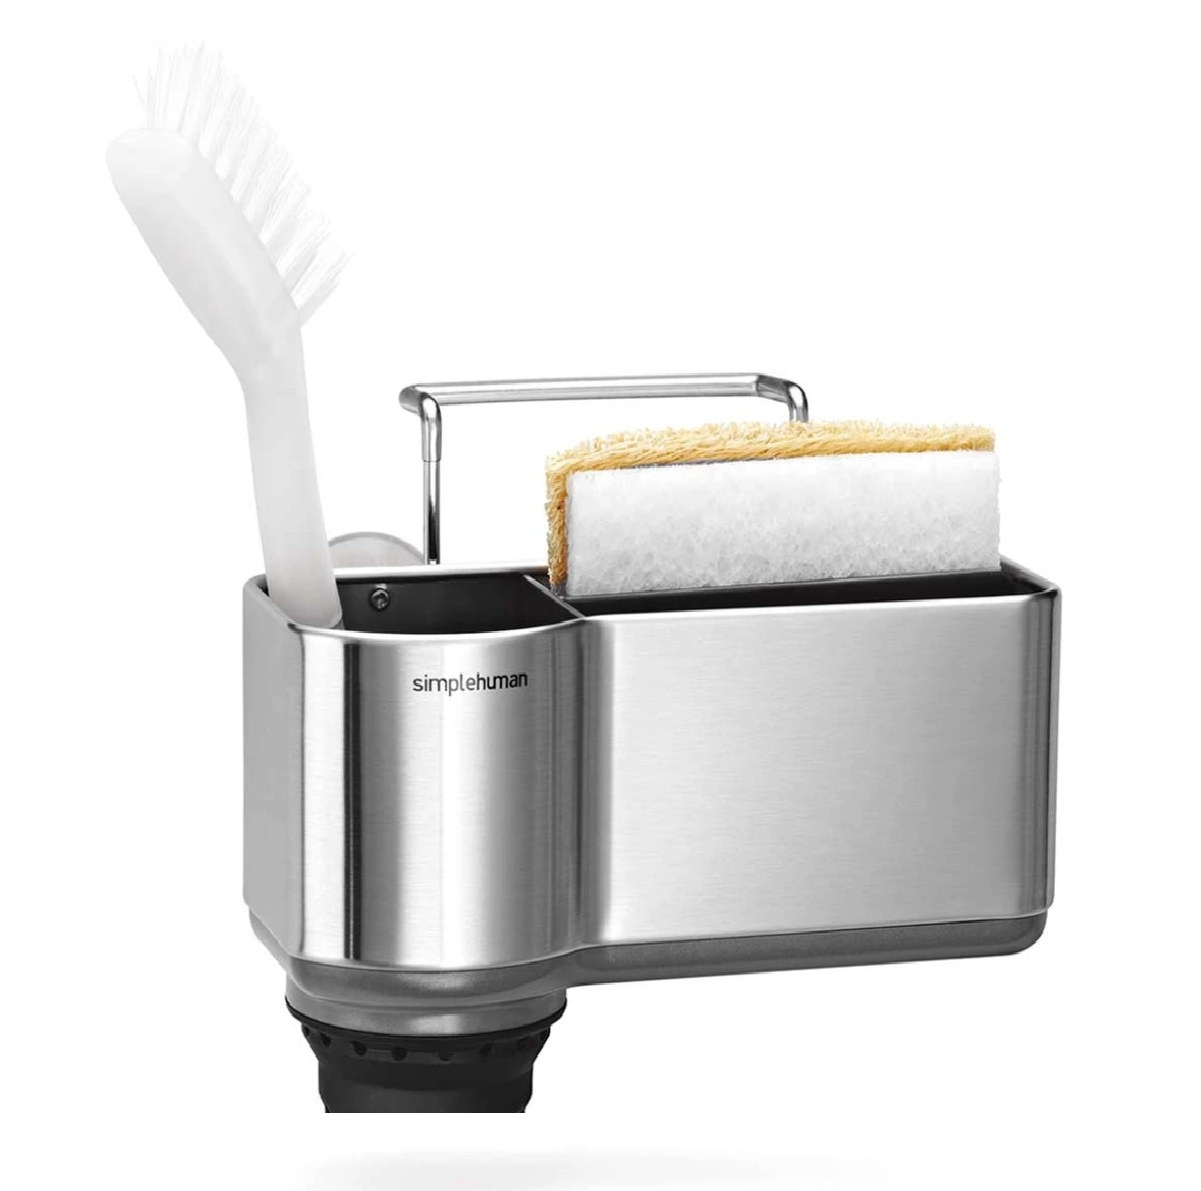 The sink caddy holding a brush and sponge